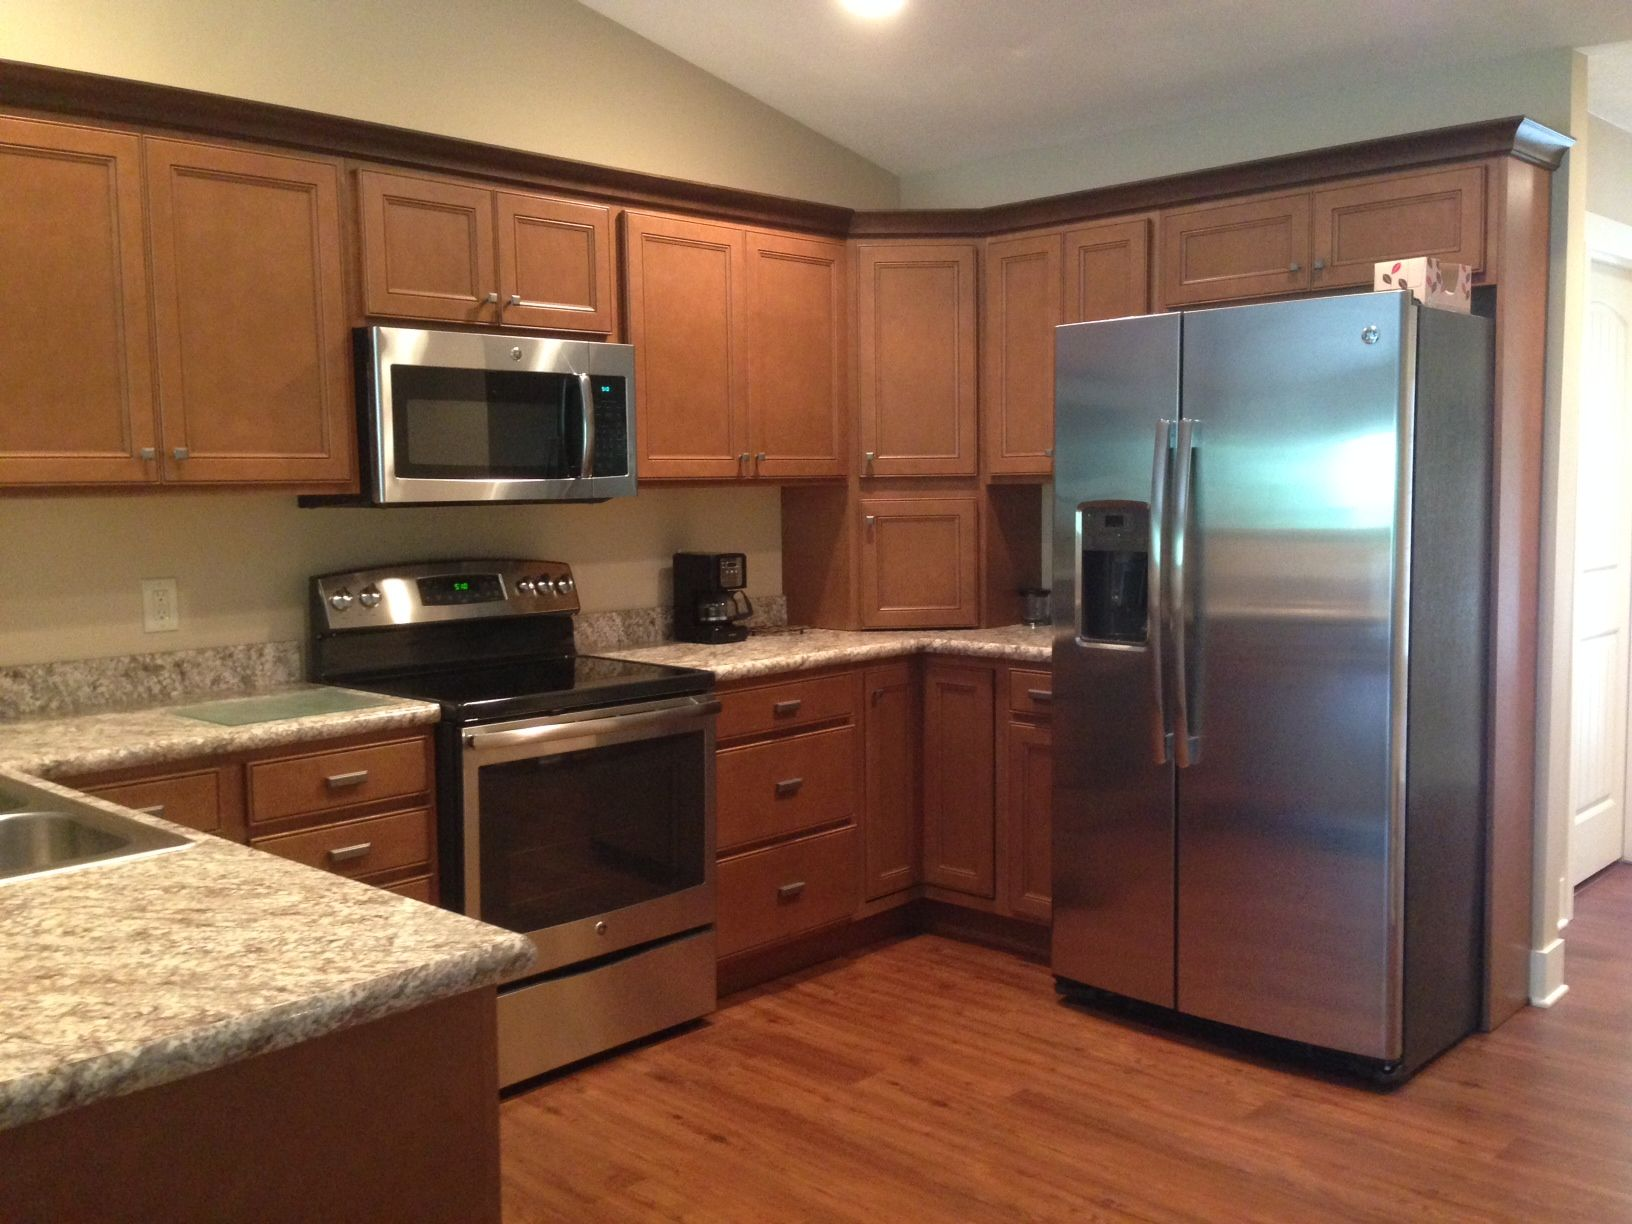 Barry County Lumber Laminate Countertops Maple Cabinets Cabinet